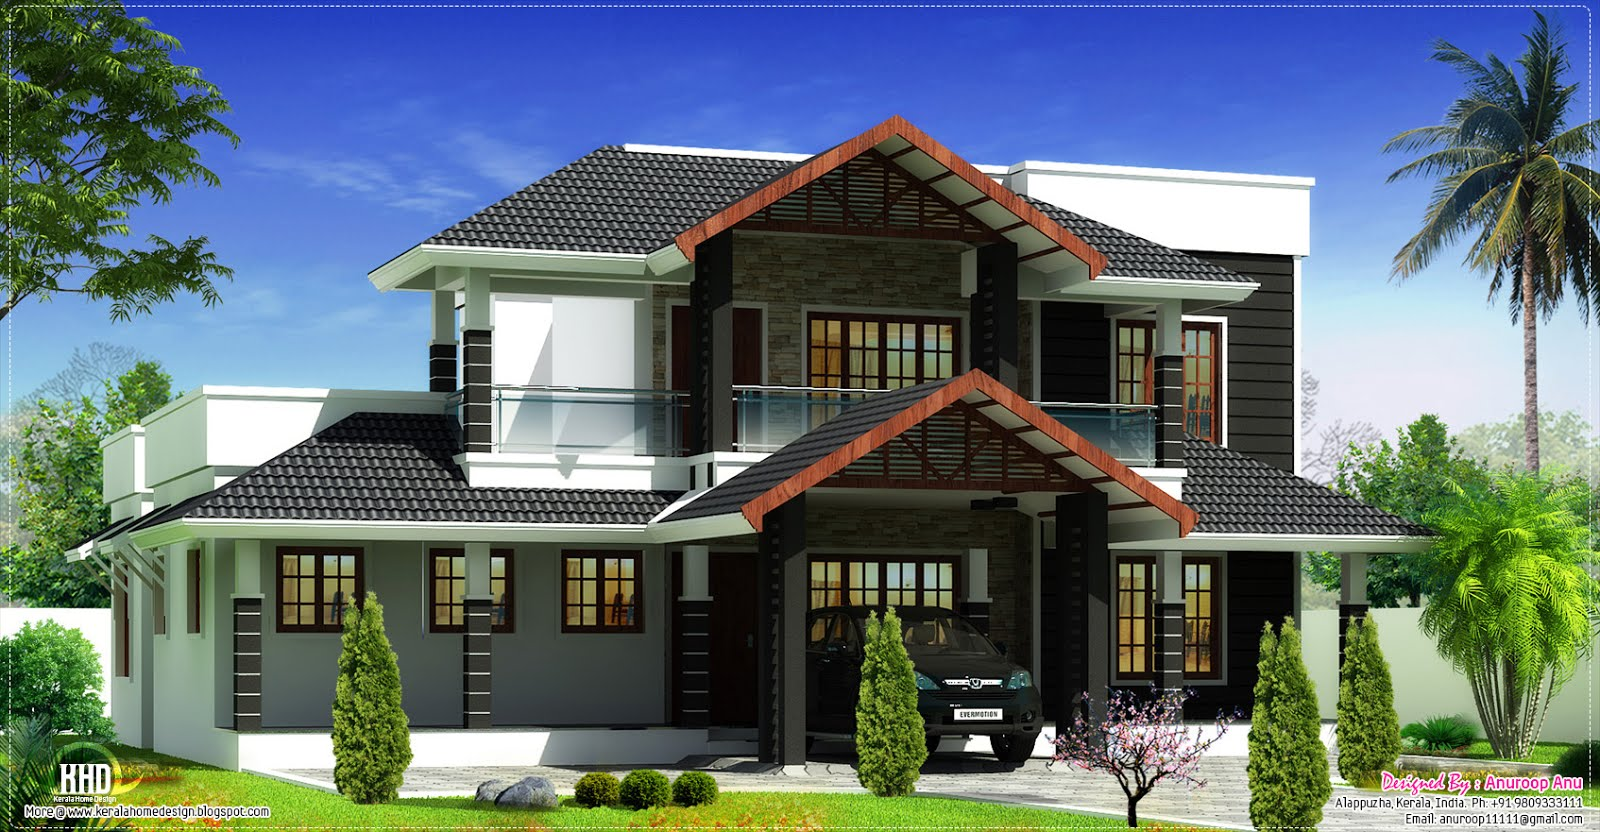 House Design Plans Beautiful Sloping Roof Villa Elevation Design